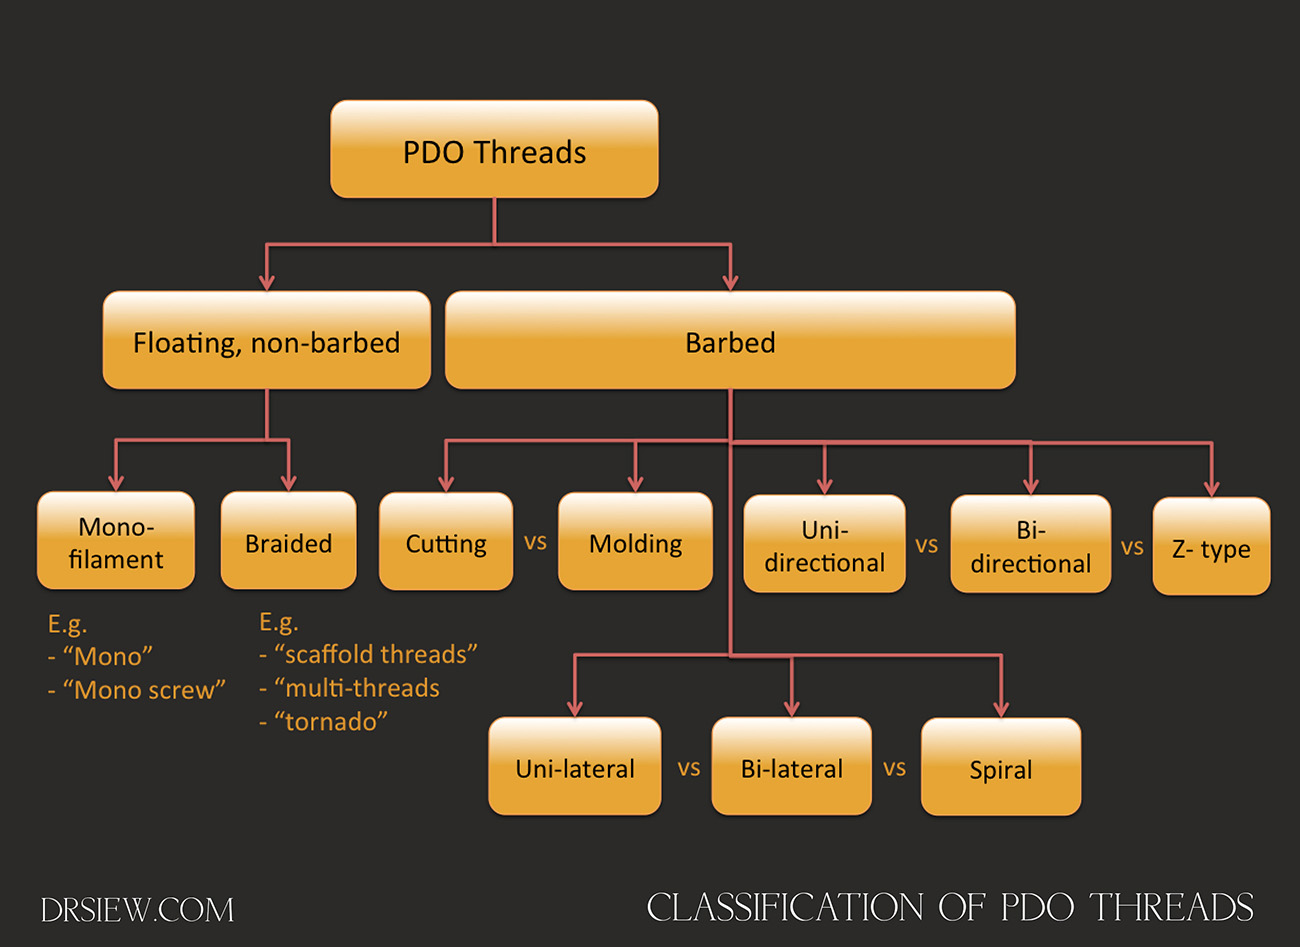 PDO Threads classification Dr Siew